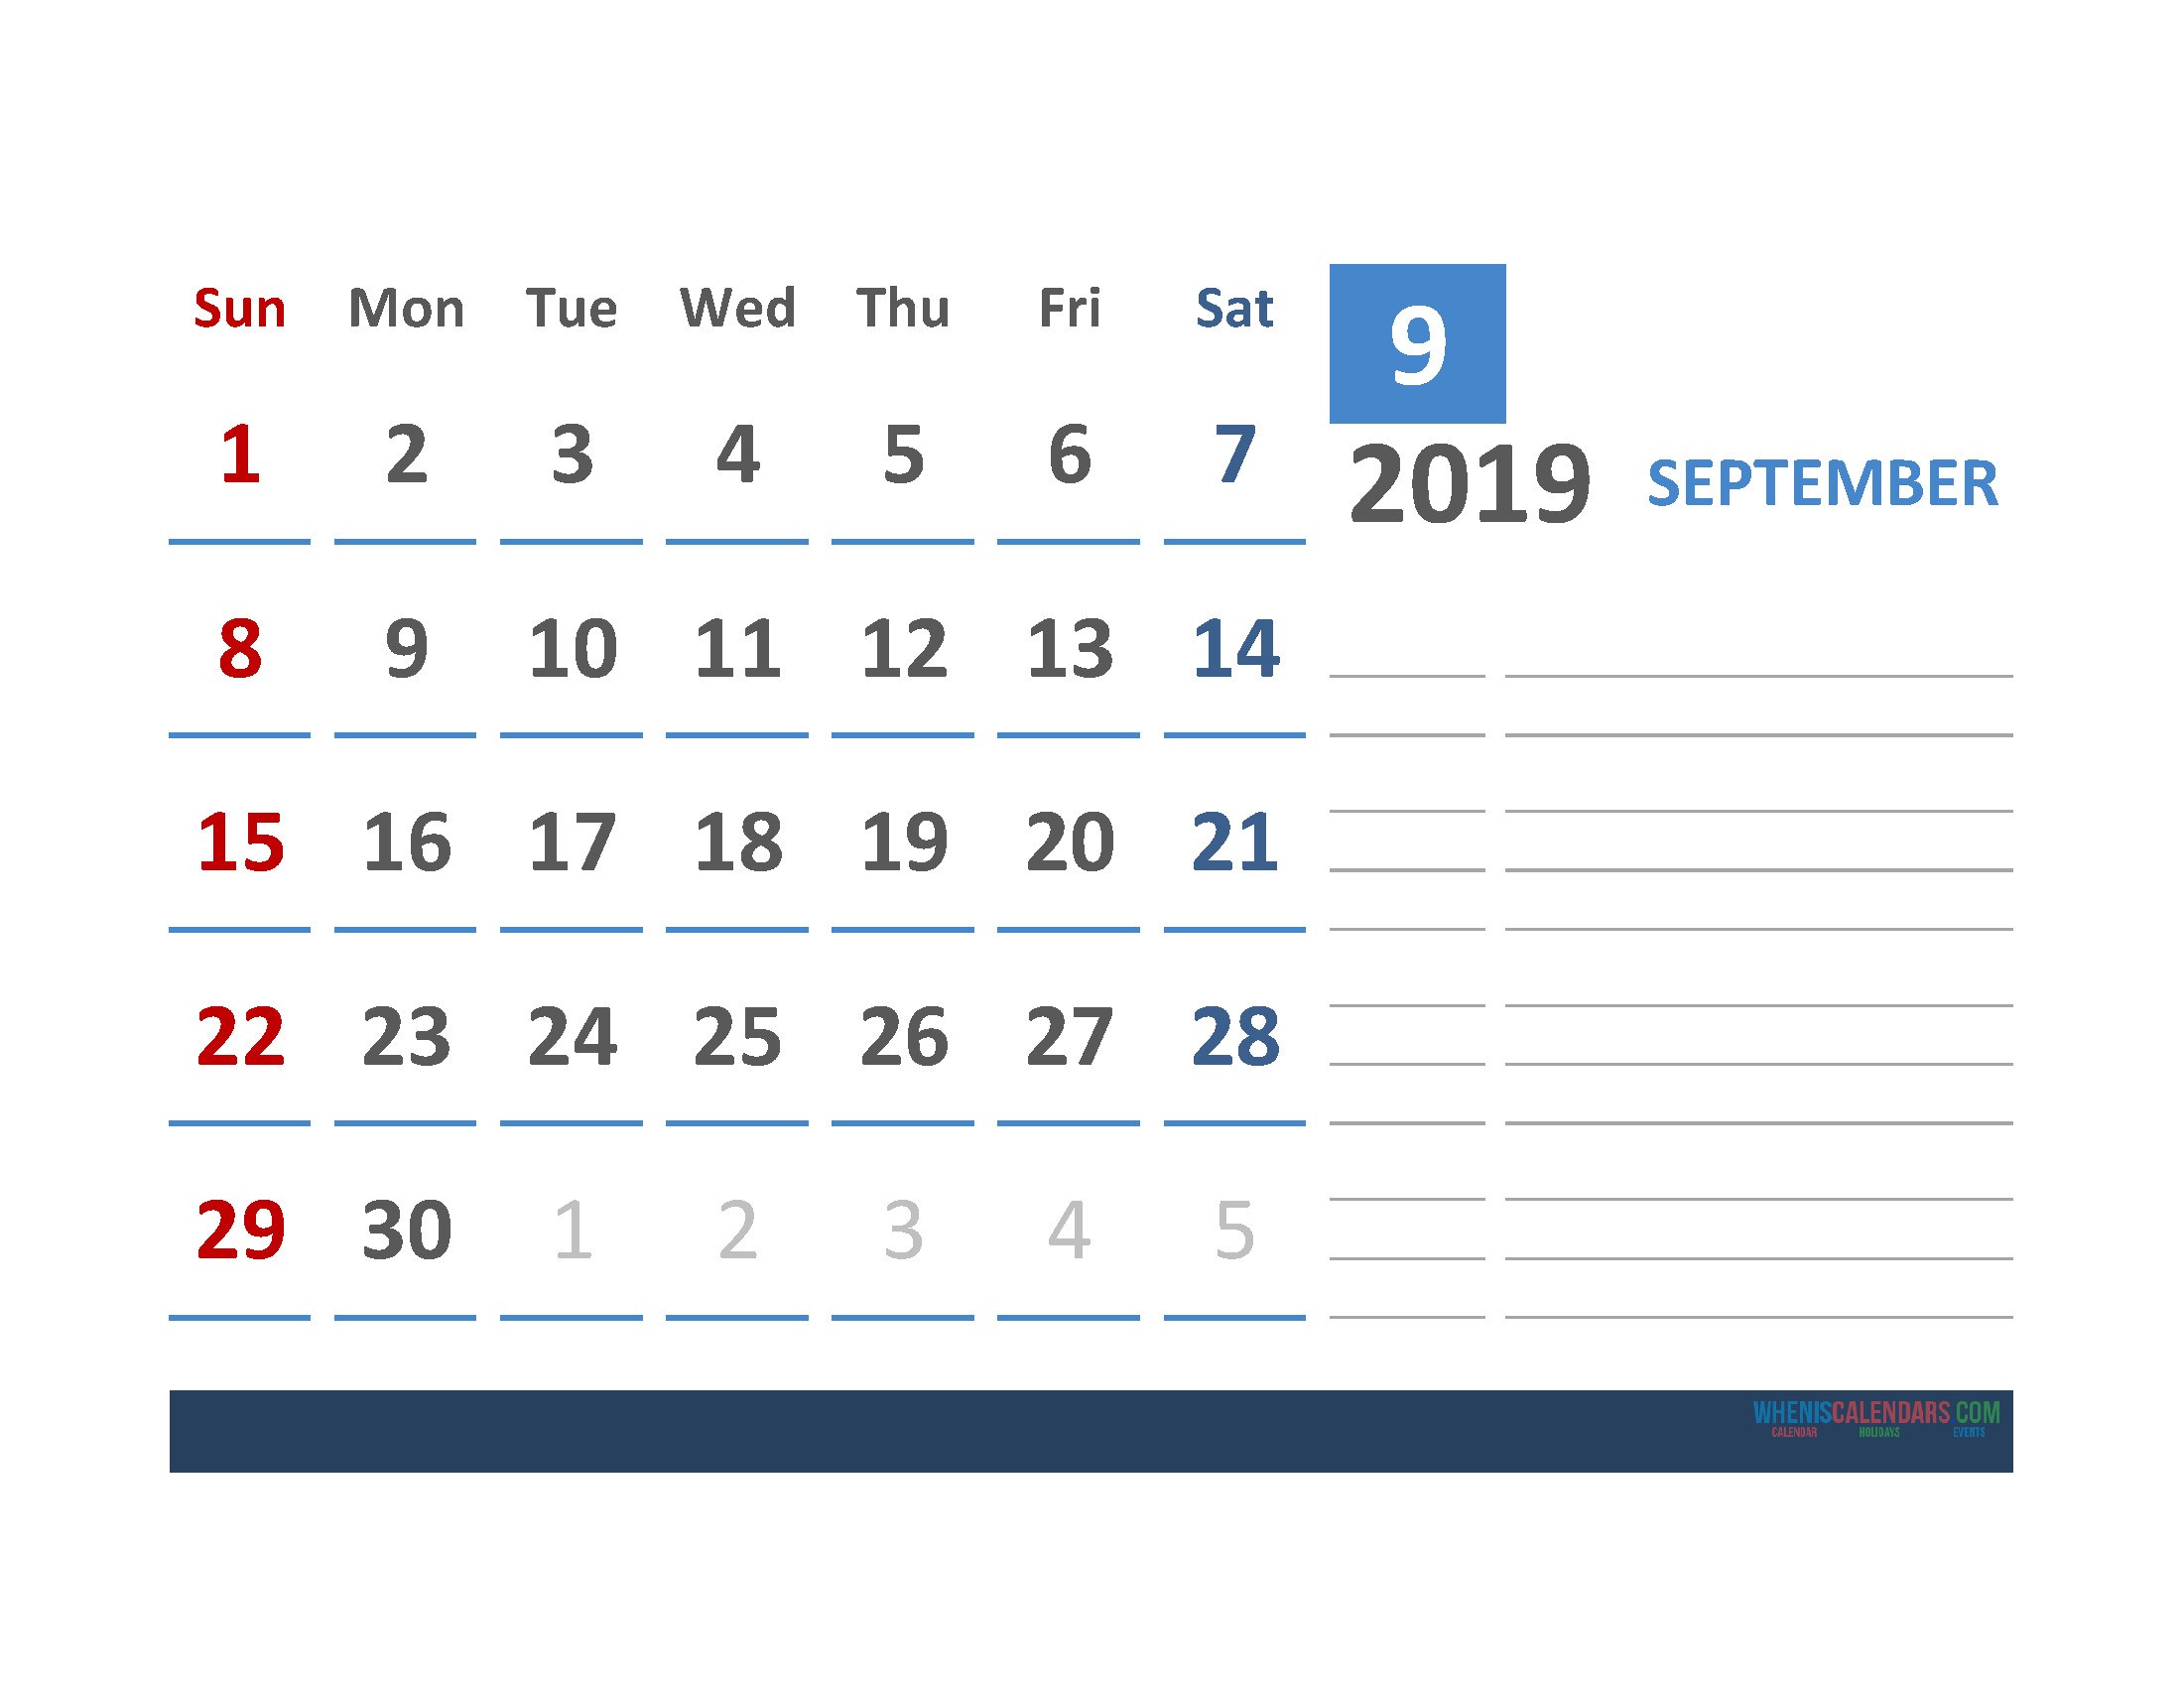 Free September 2019 Calendar Template With Space for Notes